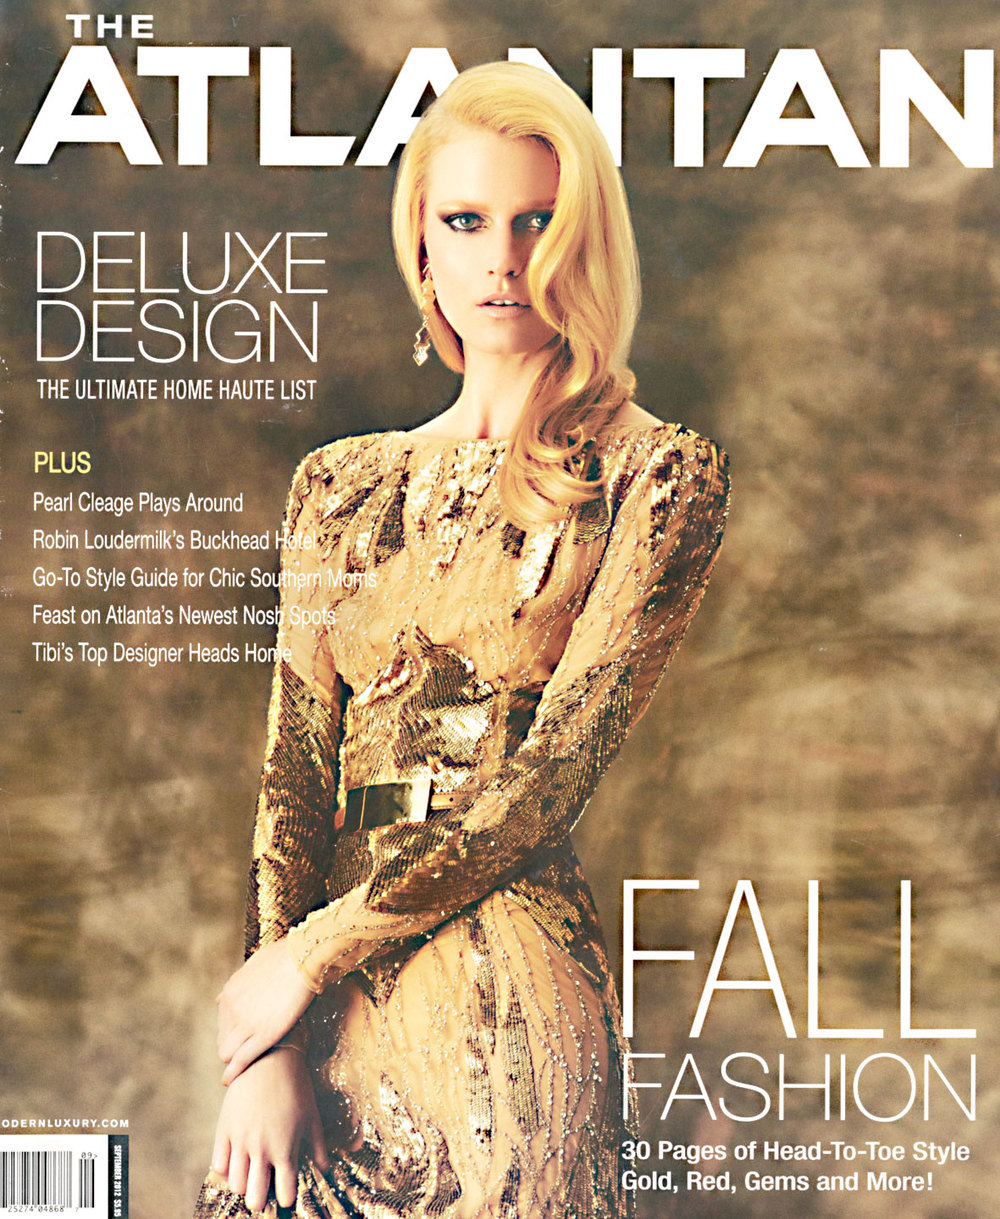 The ATLANTAN September 2012